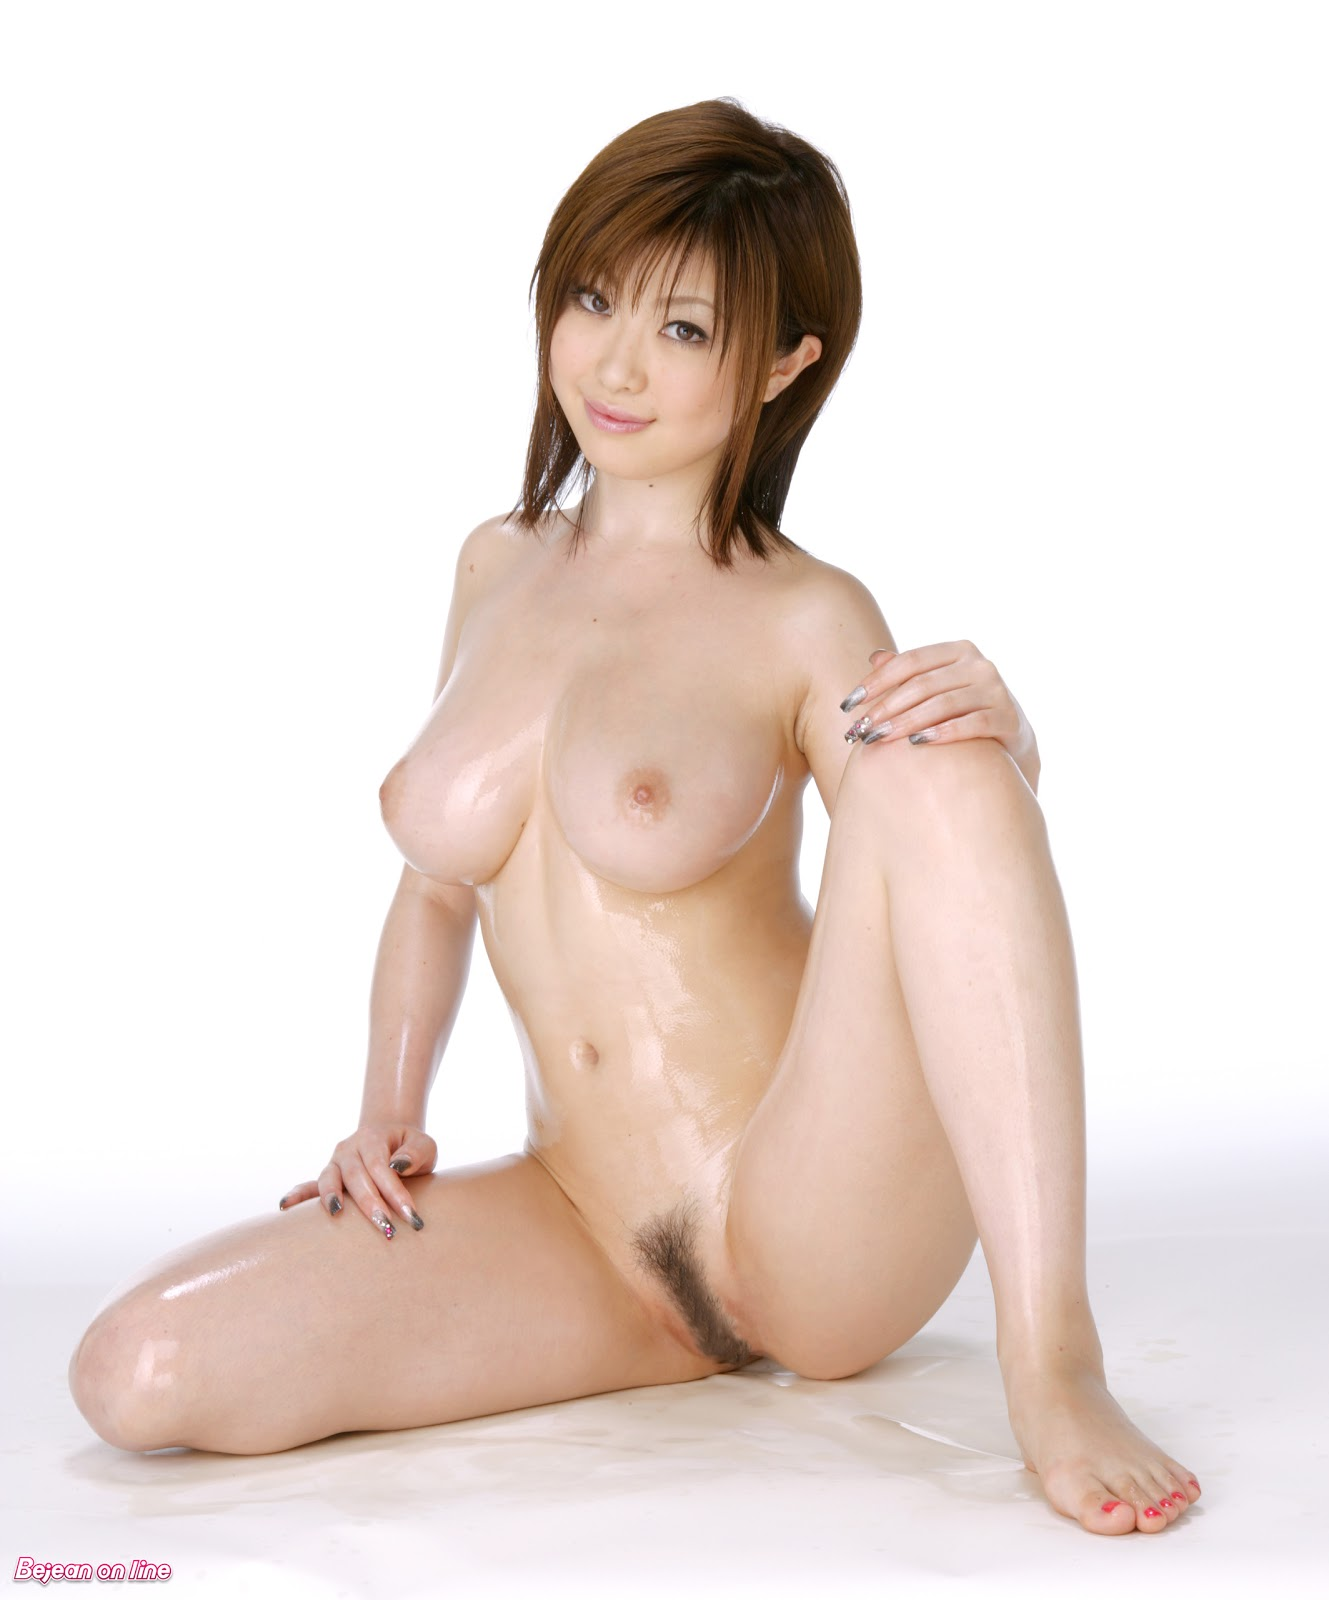 Naked Japan girl something